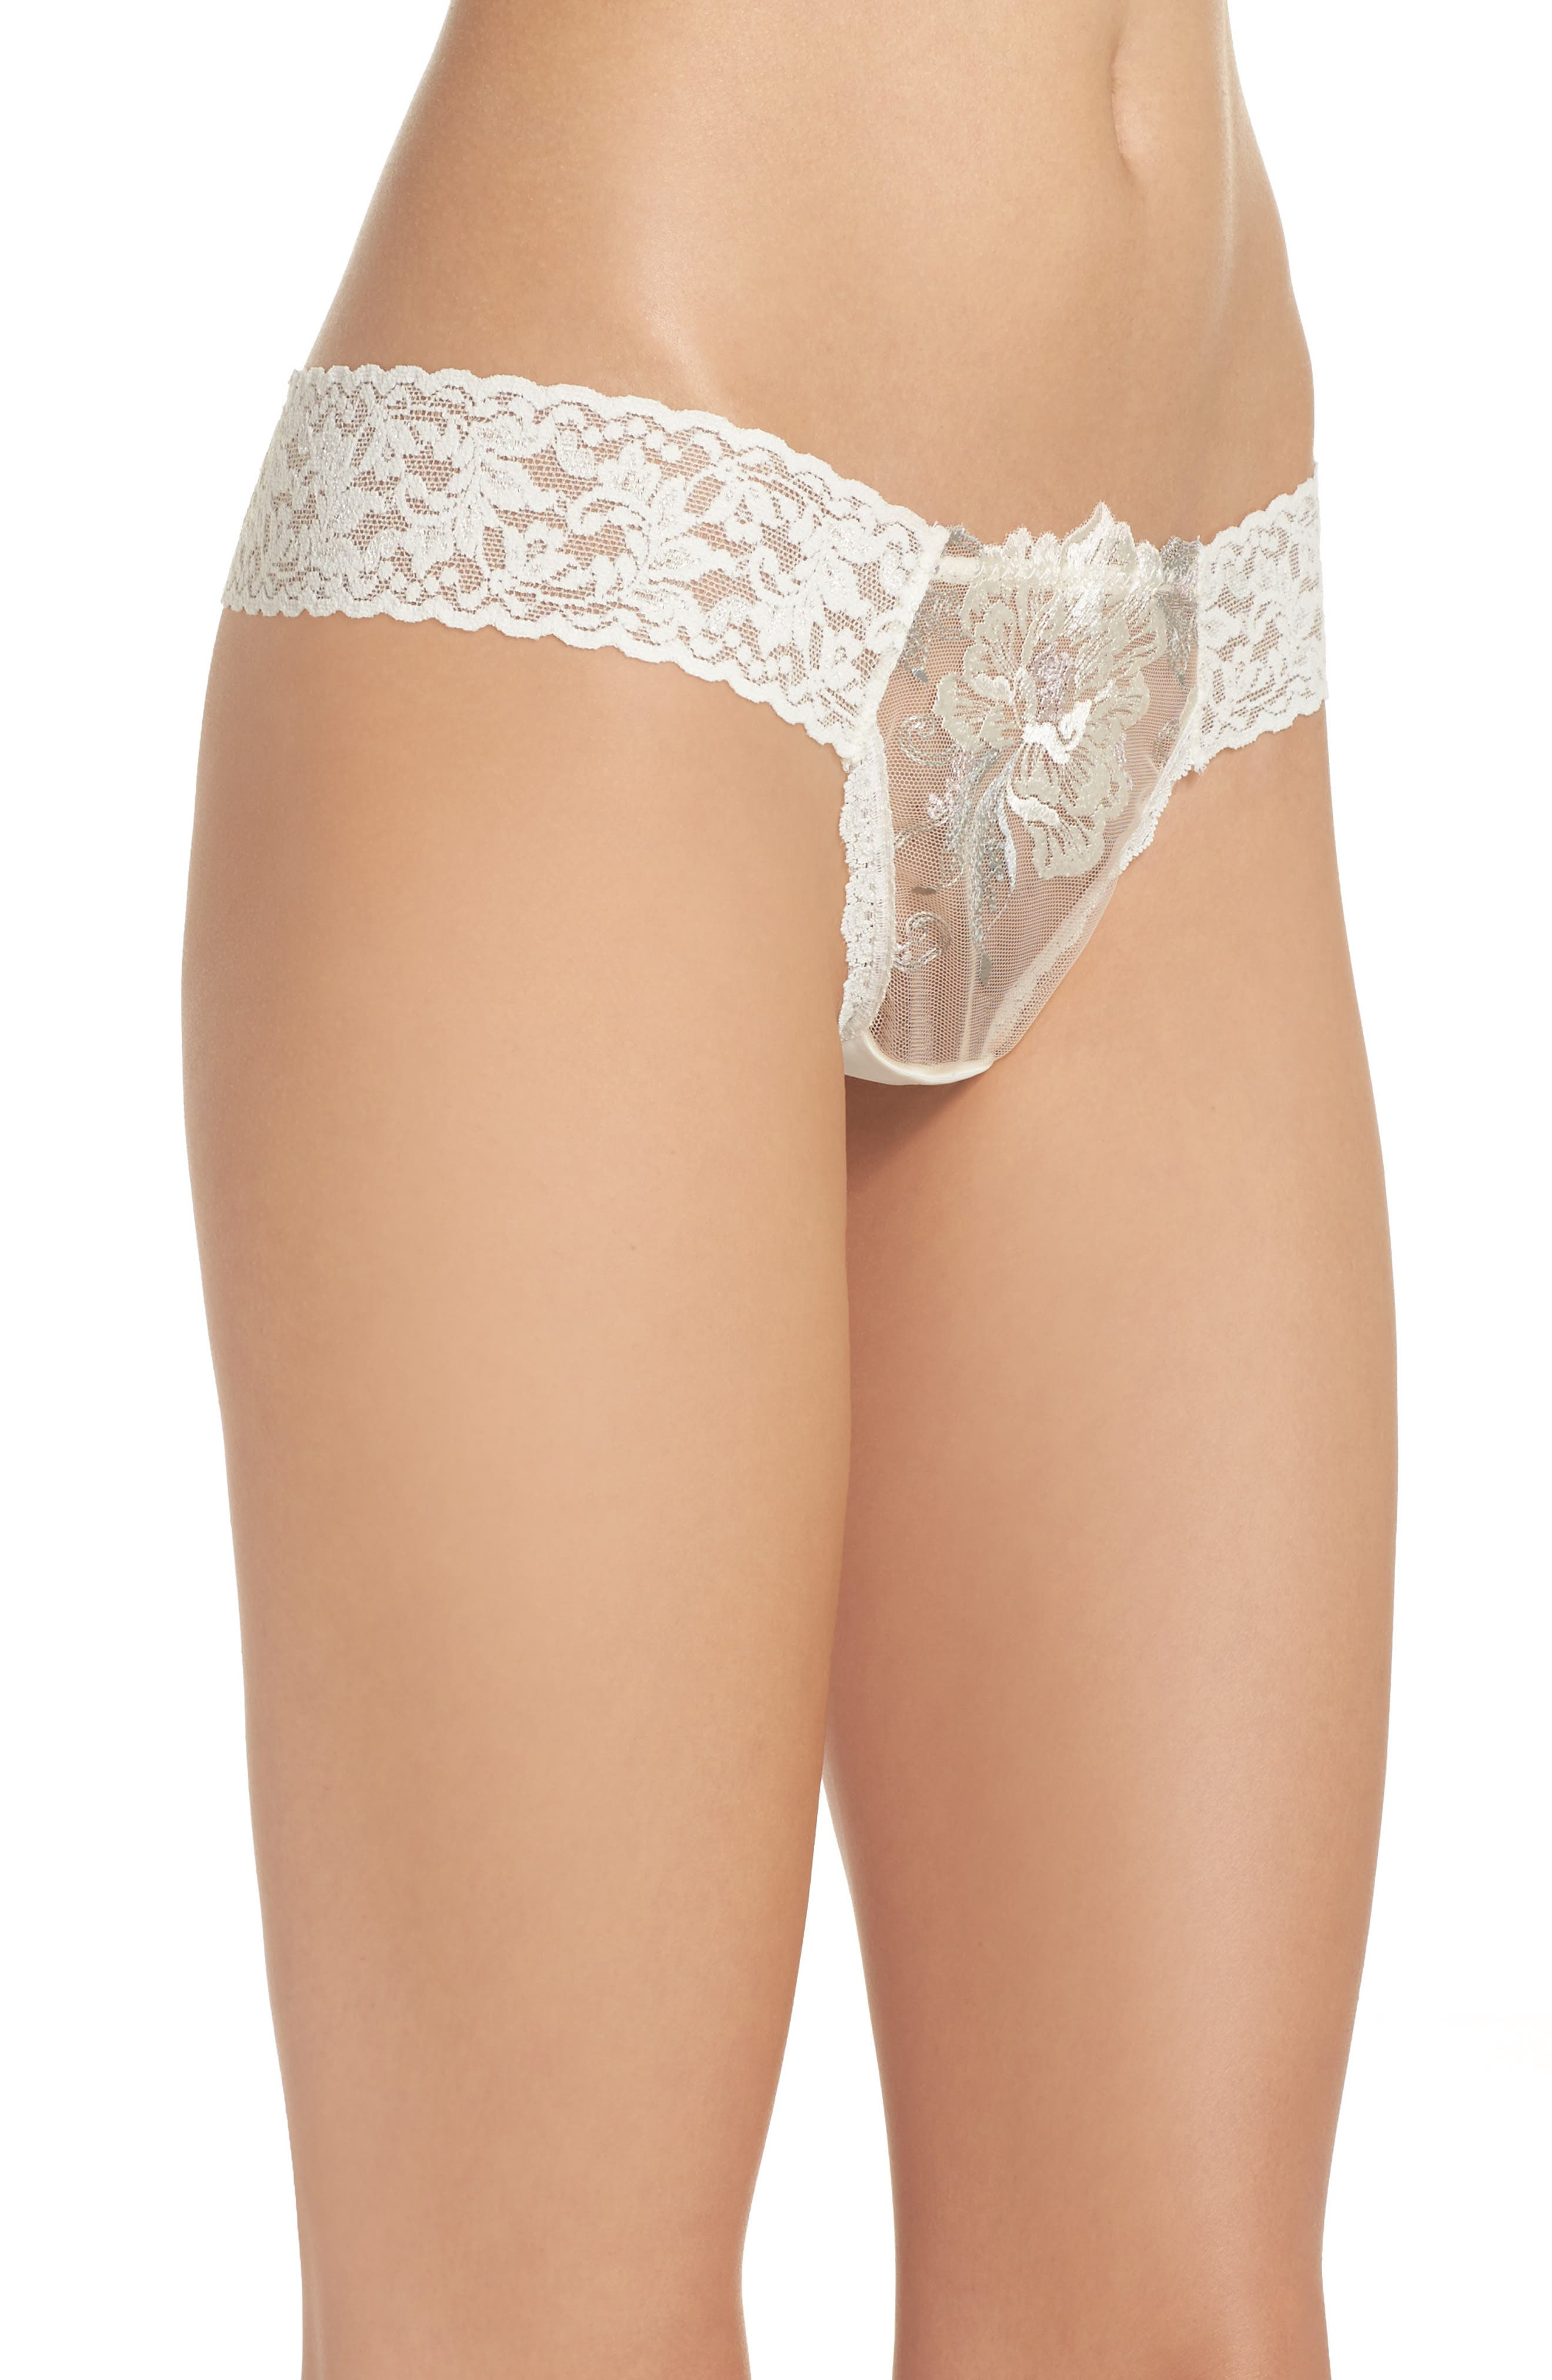 Floral Low Rise Thong,                             Alternate thumbnail 3, color,                             Ivorgrypnk